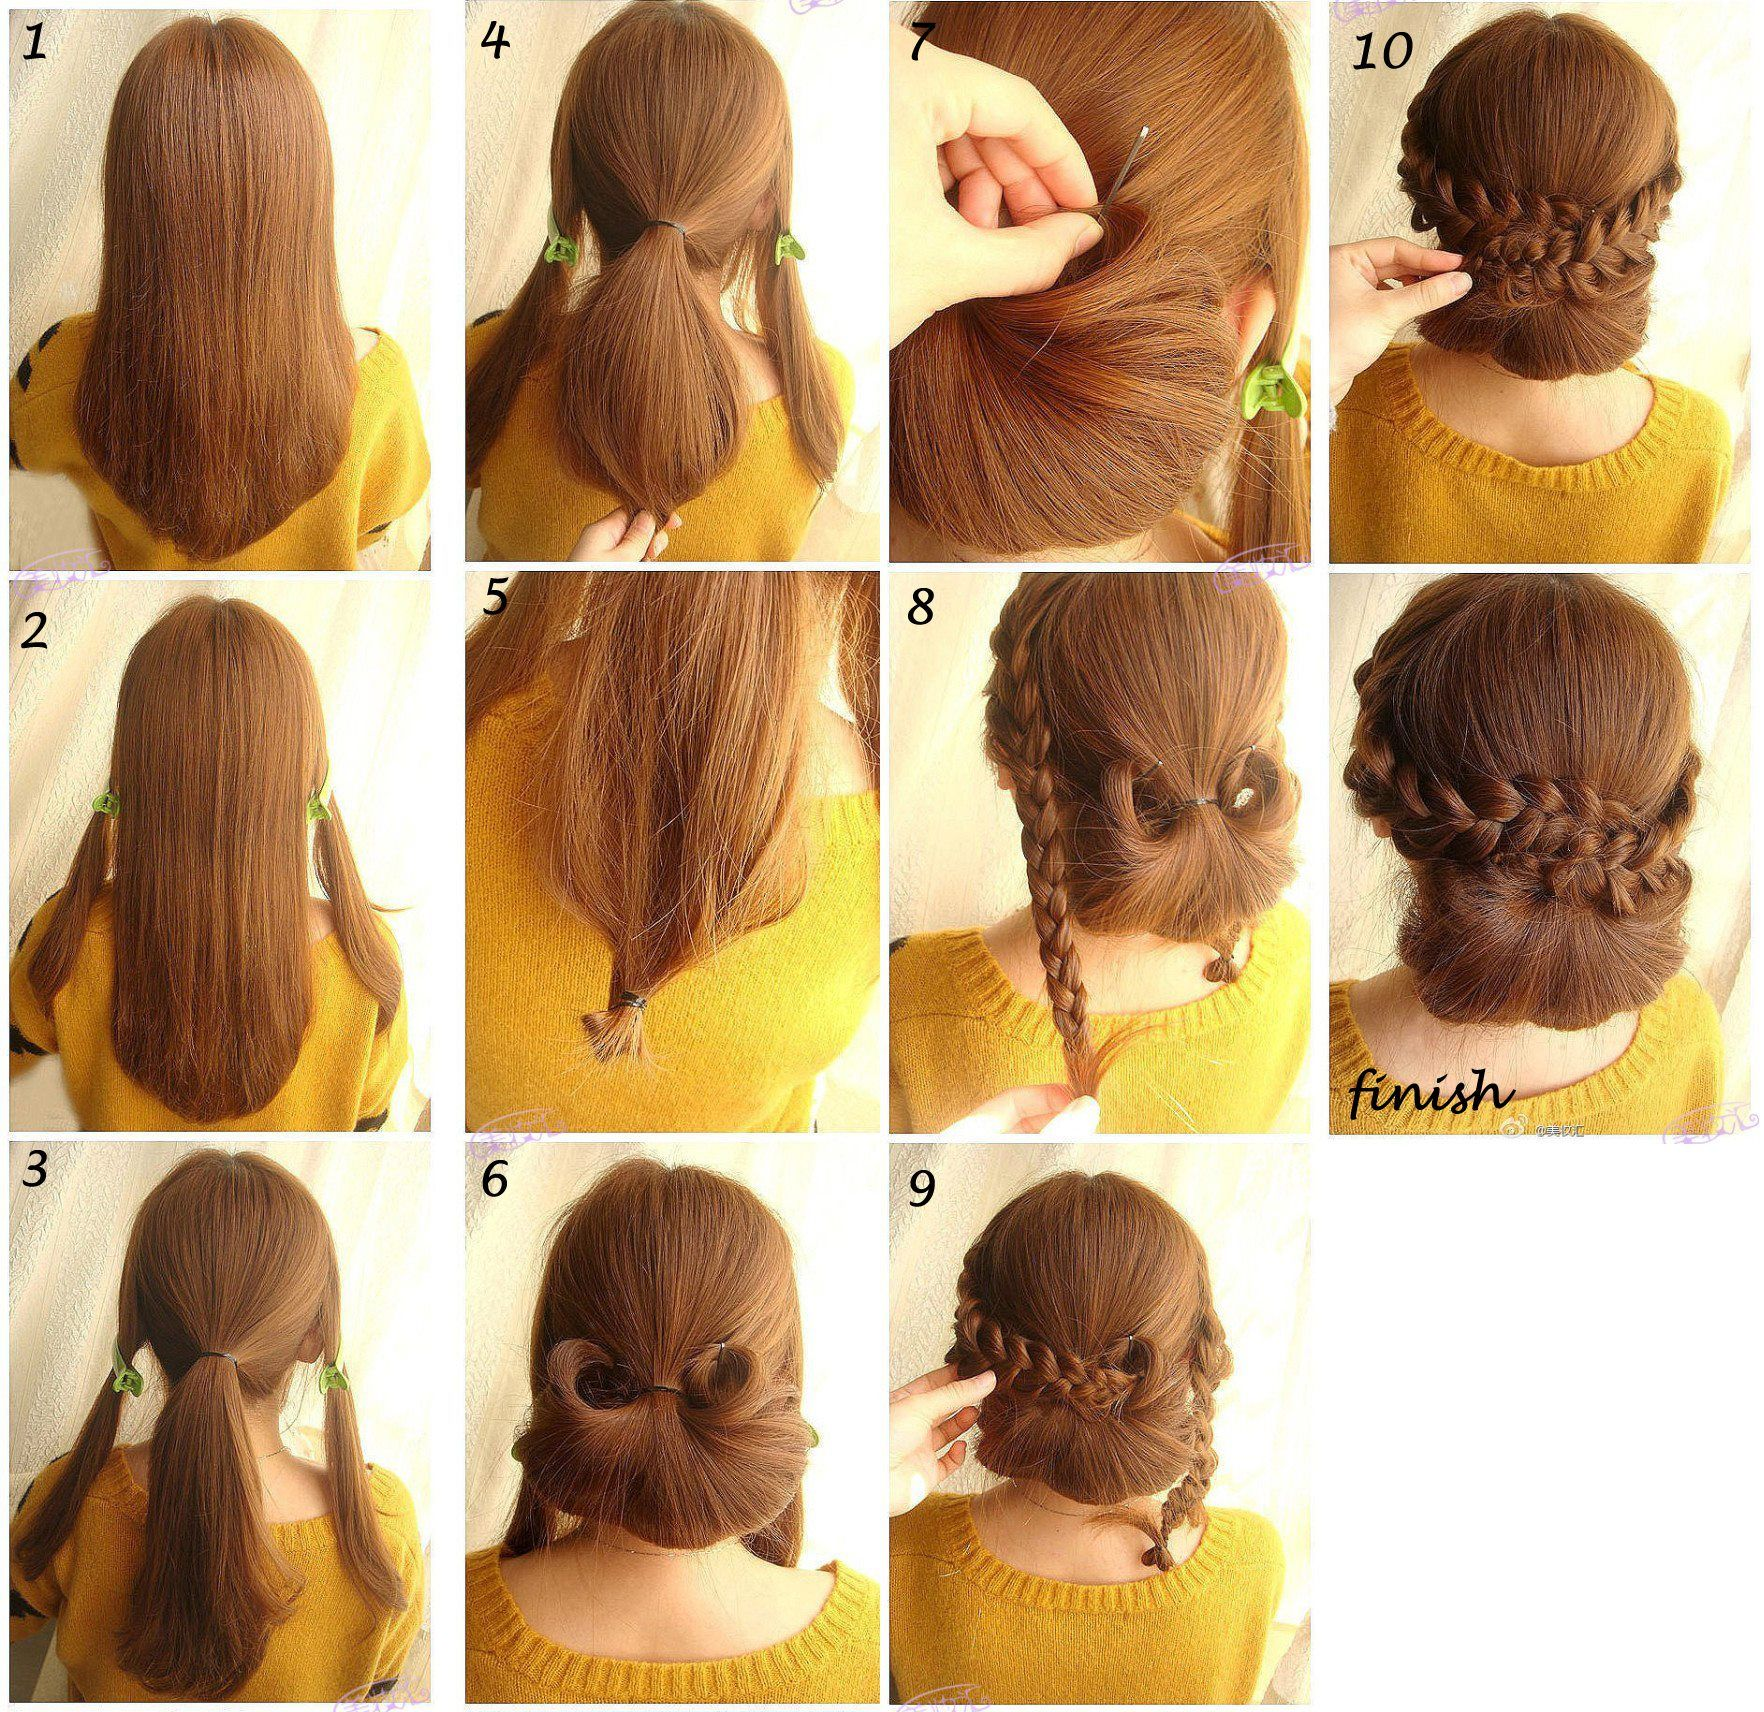 Pin by Areeya Thai on Hairdo hairstyle Pinterest